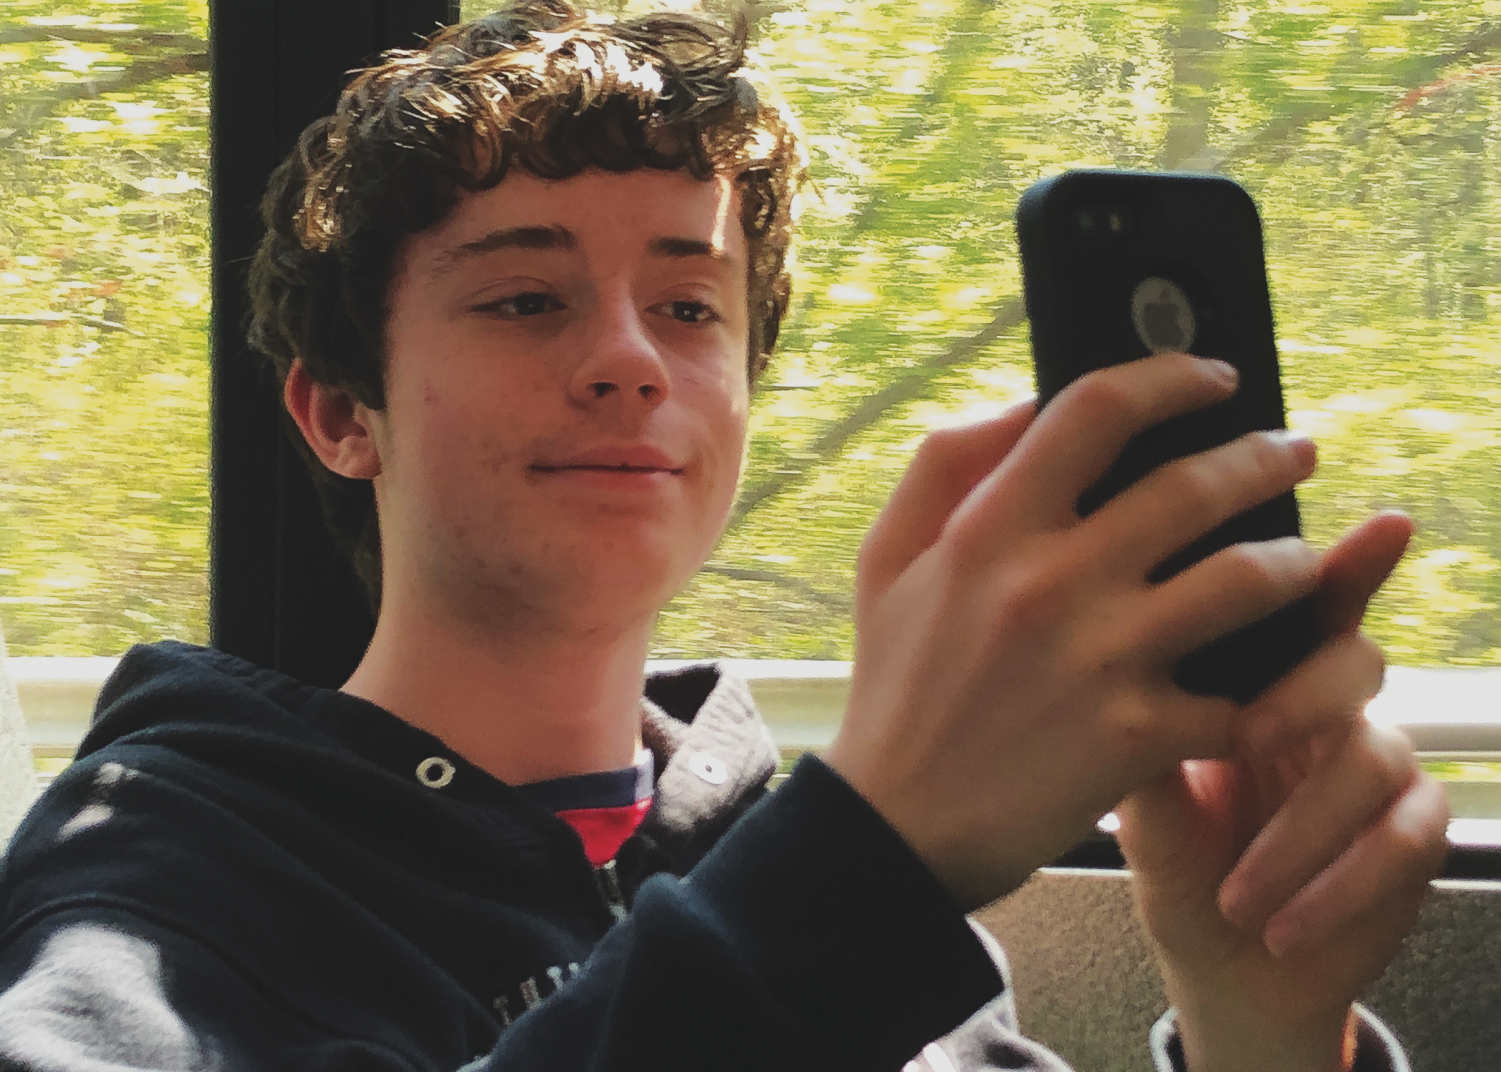 Freshman Ryan Hart of Freehold takes selfies during his bus ride home from school.